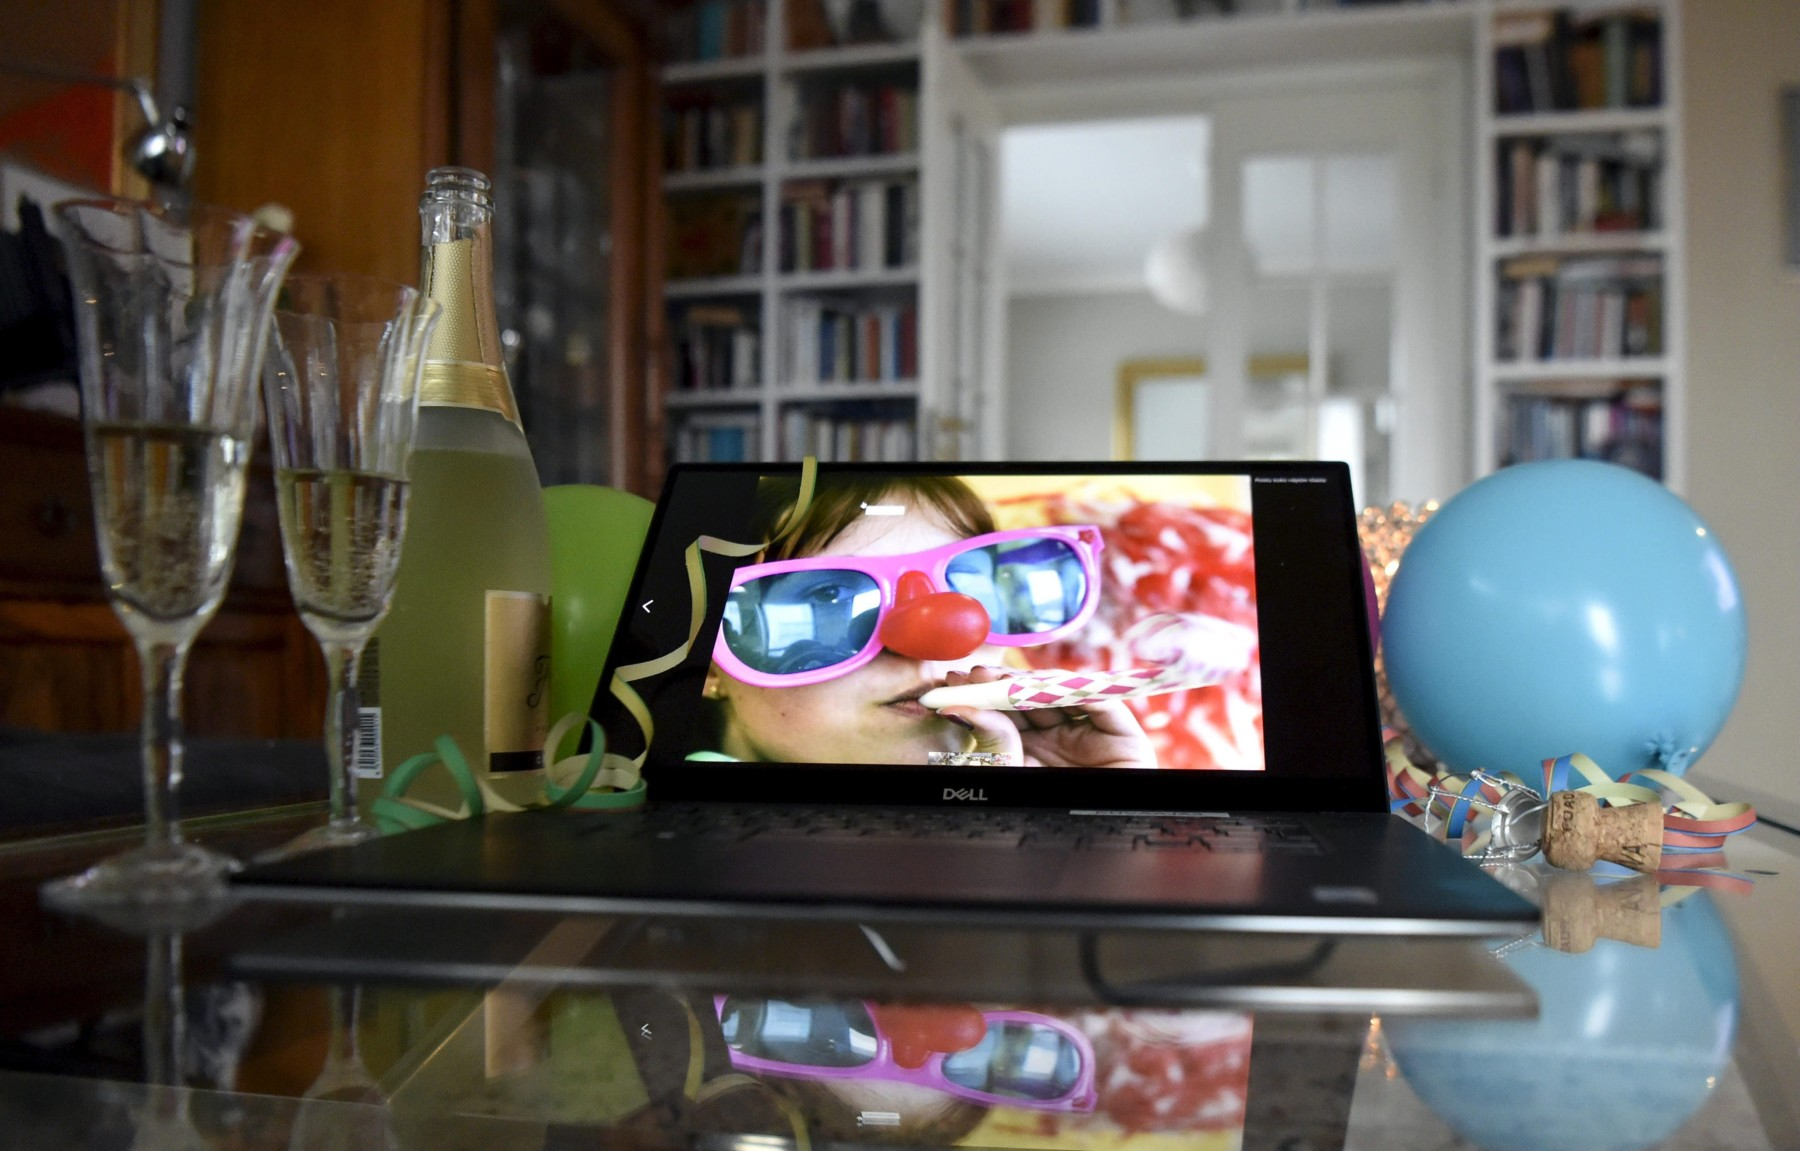 In a home, an open laptop computer screen shows a fun event. Beside it on the table are a balloon, a bottle of champagne and two glasses.